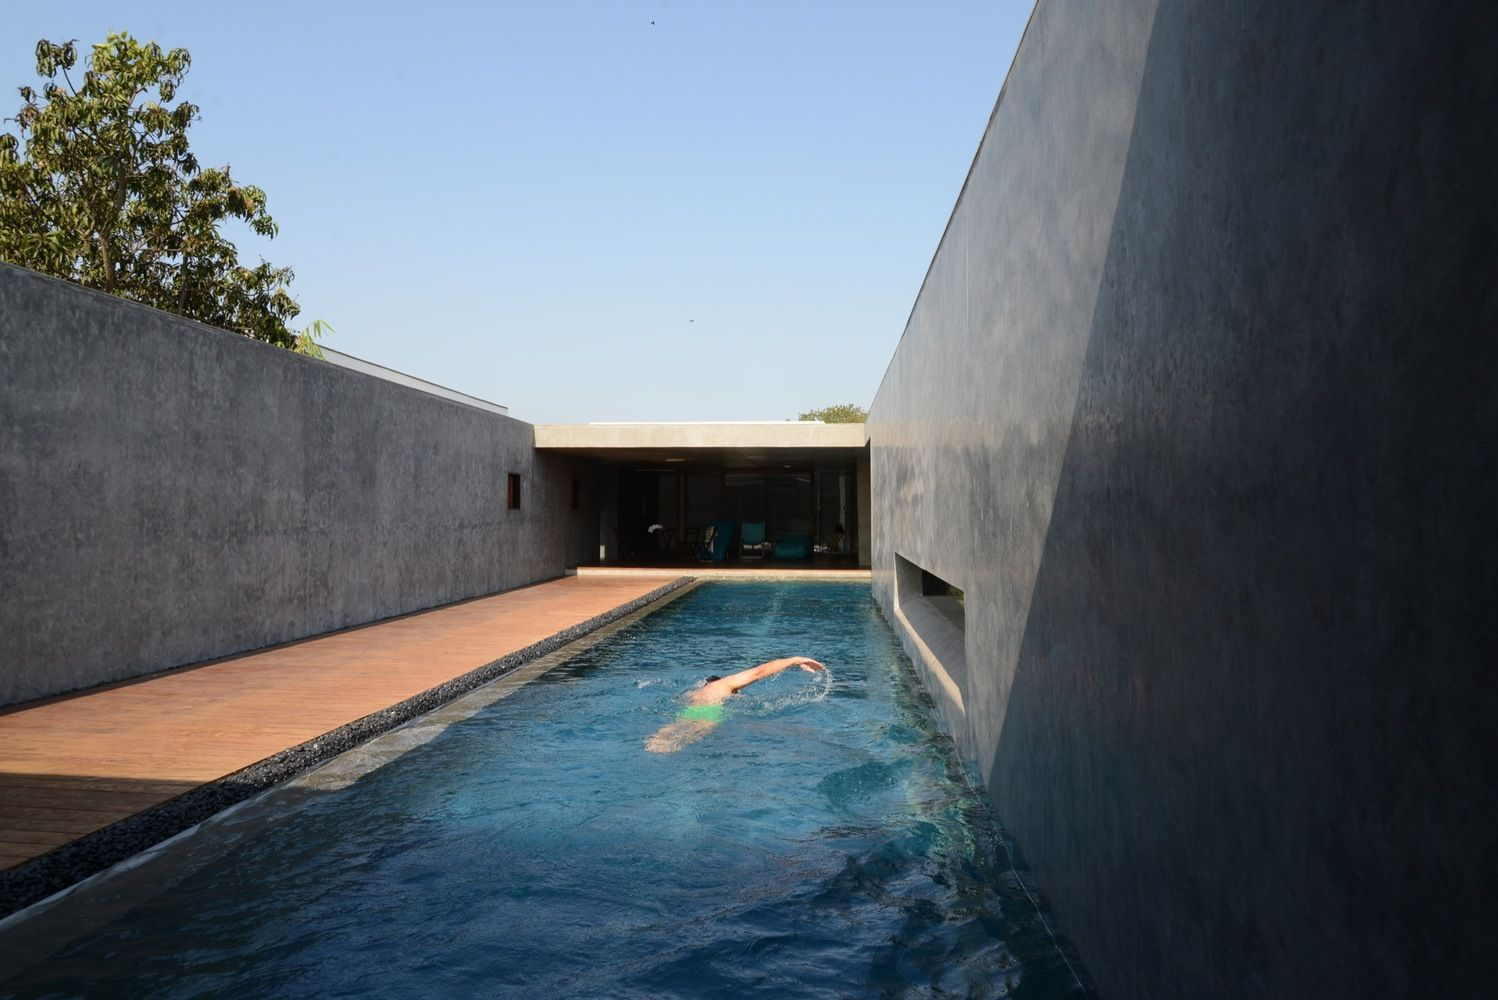 Gallery Of Three Court House Rma Architects 17 Courtyard House Architect Architect Design